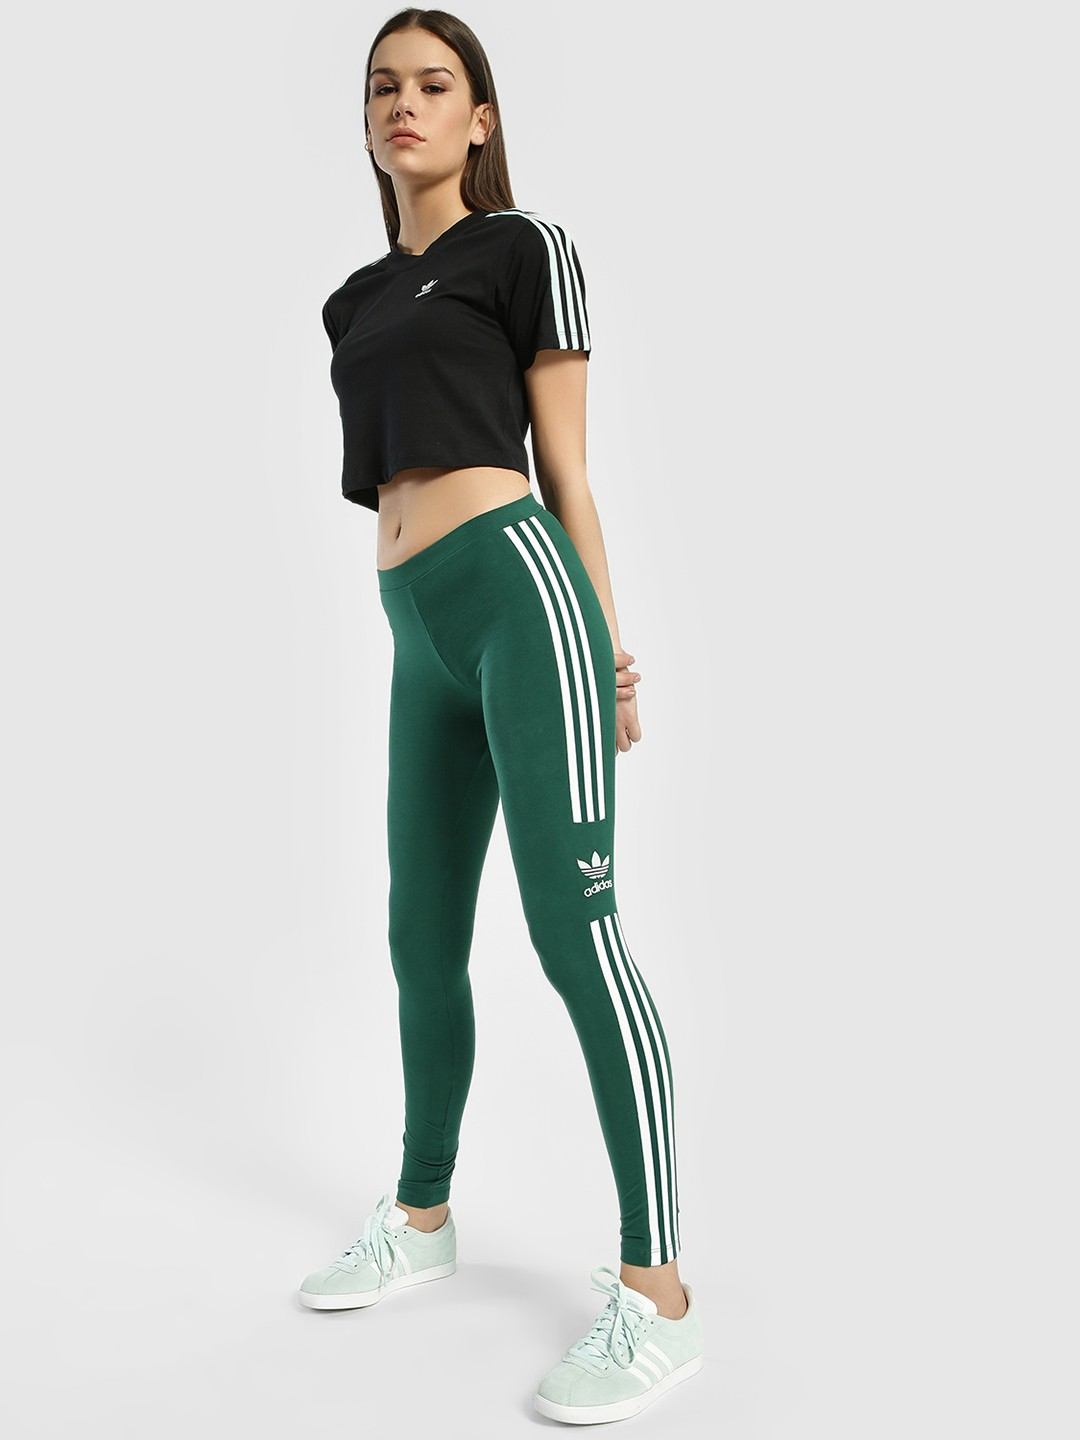 Adidas Originals Green 3-Stripe Trefoil Tights 1